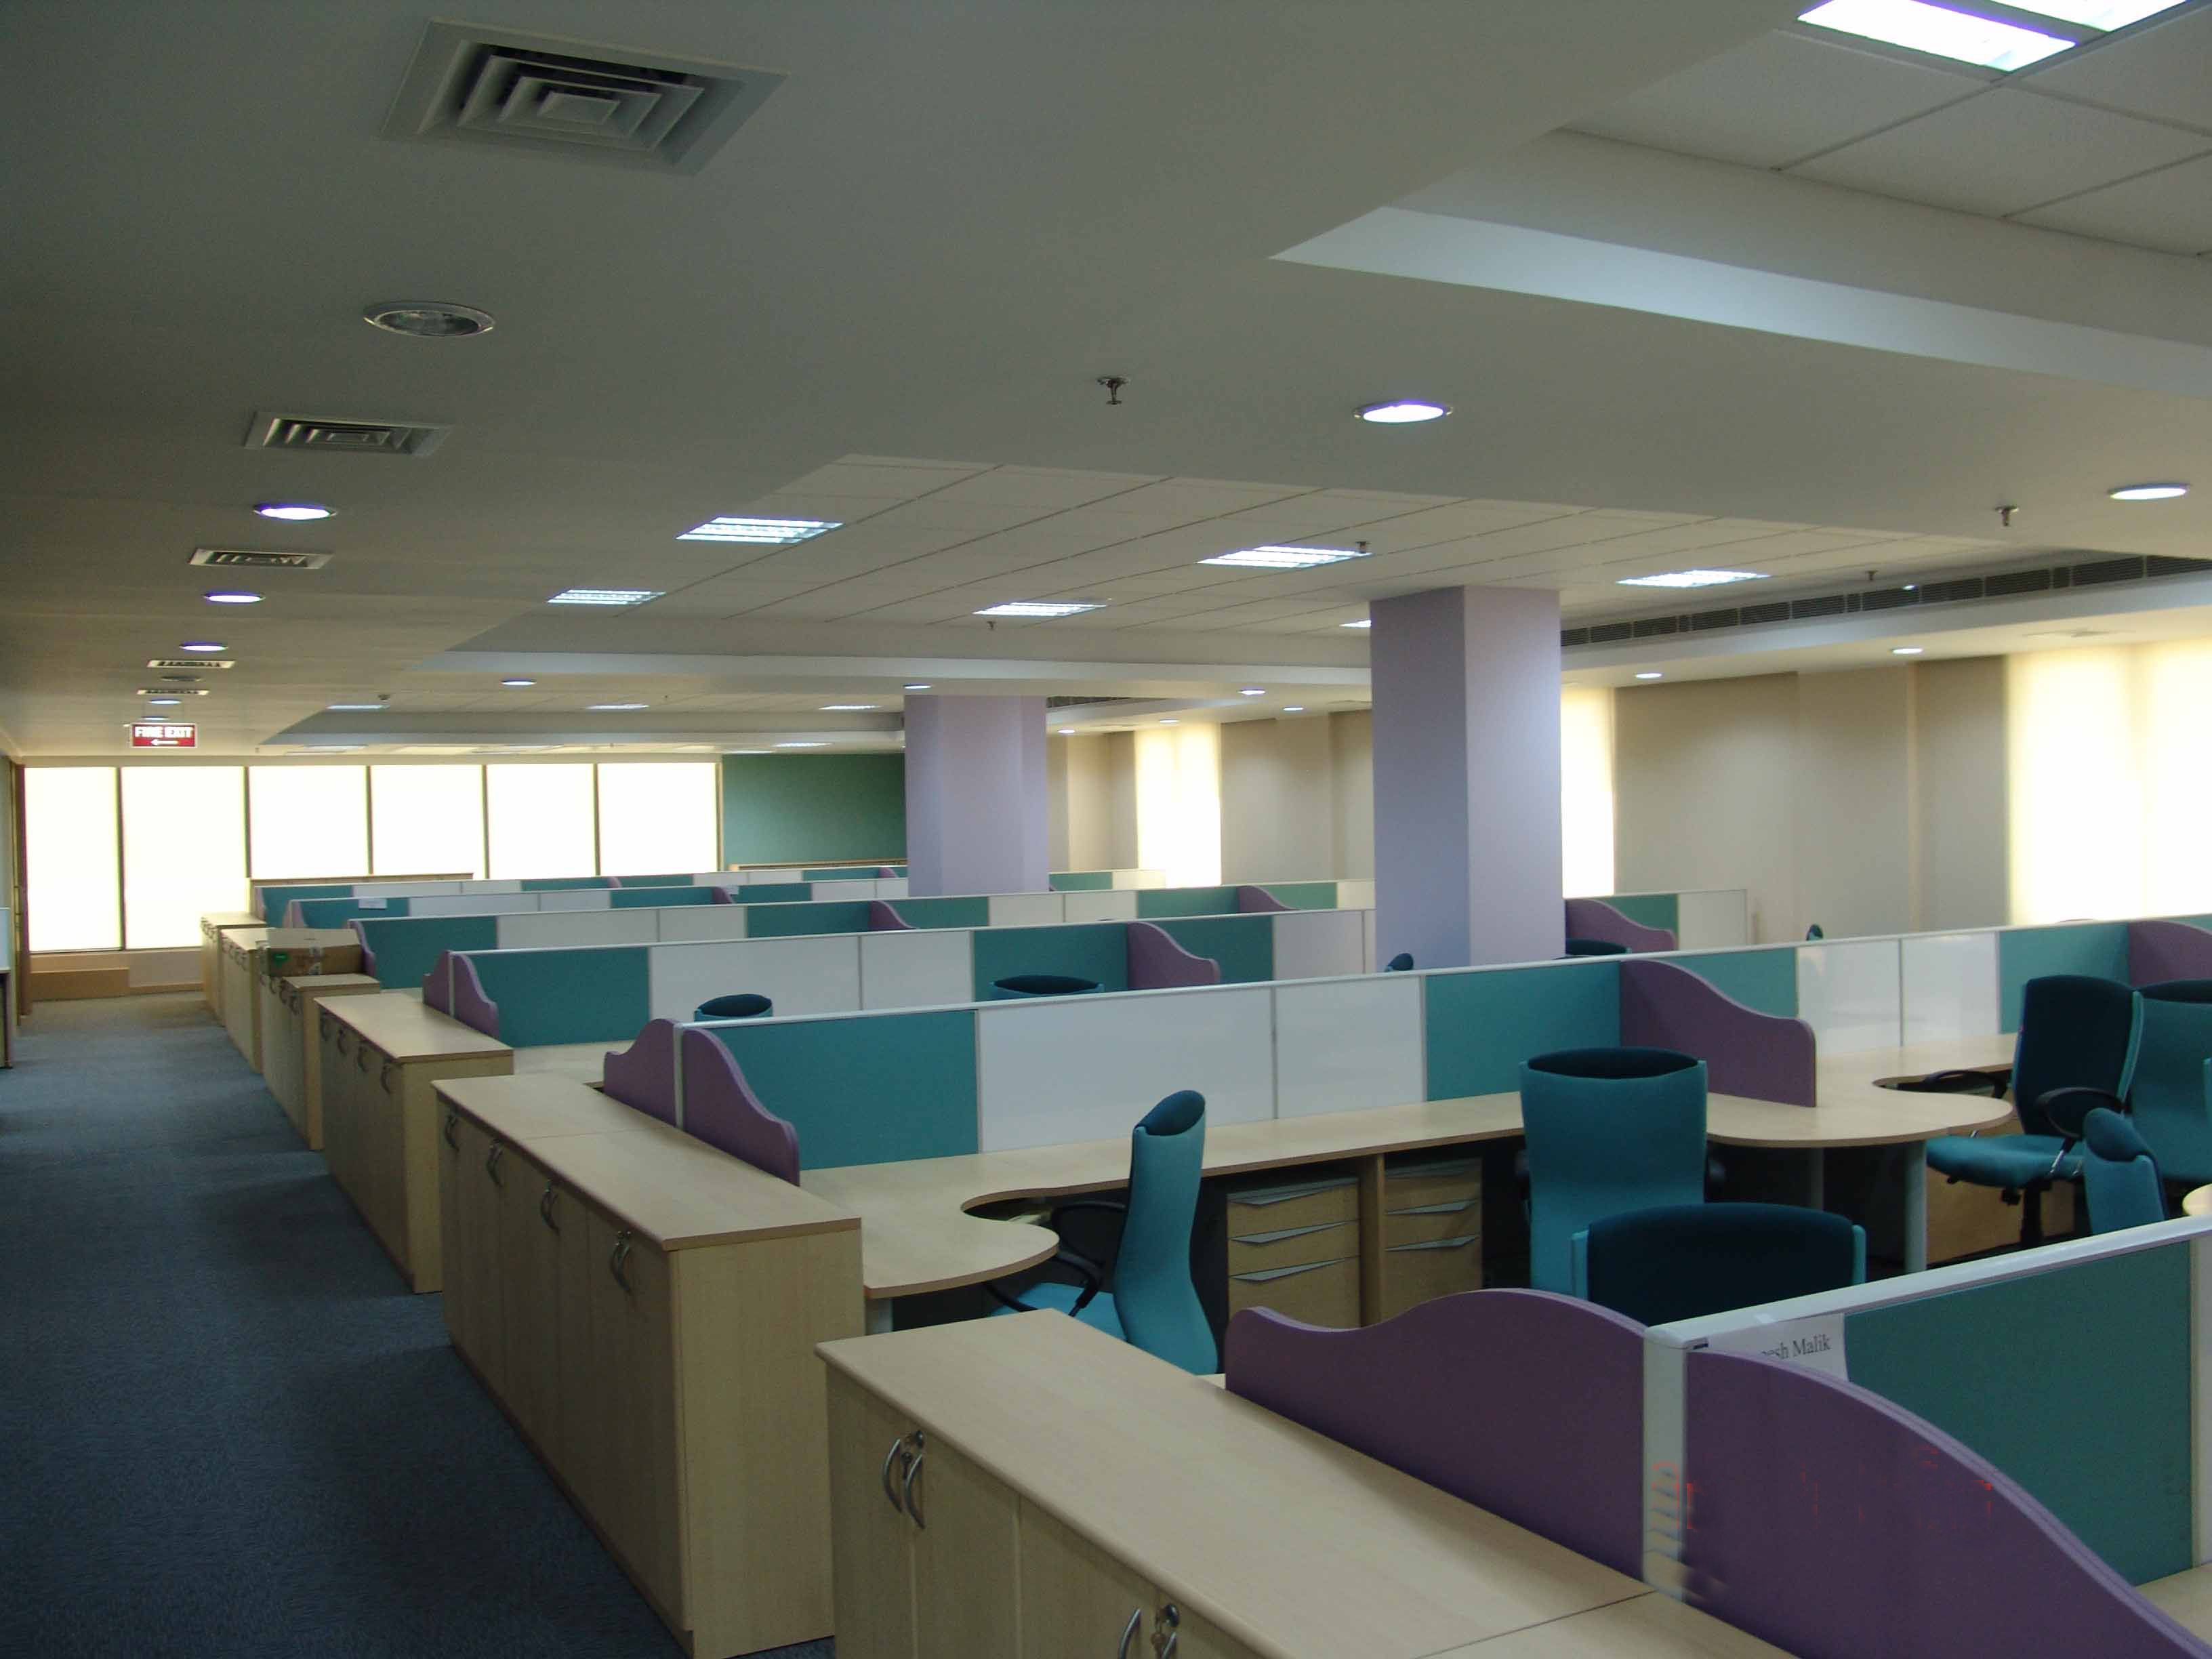 Call Us 9910007460 For Office Space For Rent In Noida Sector 16 Furnished Of Commercial Office Space Commercial Property For Rent Commercial Property For Sale